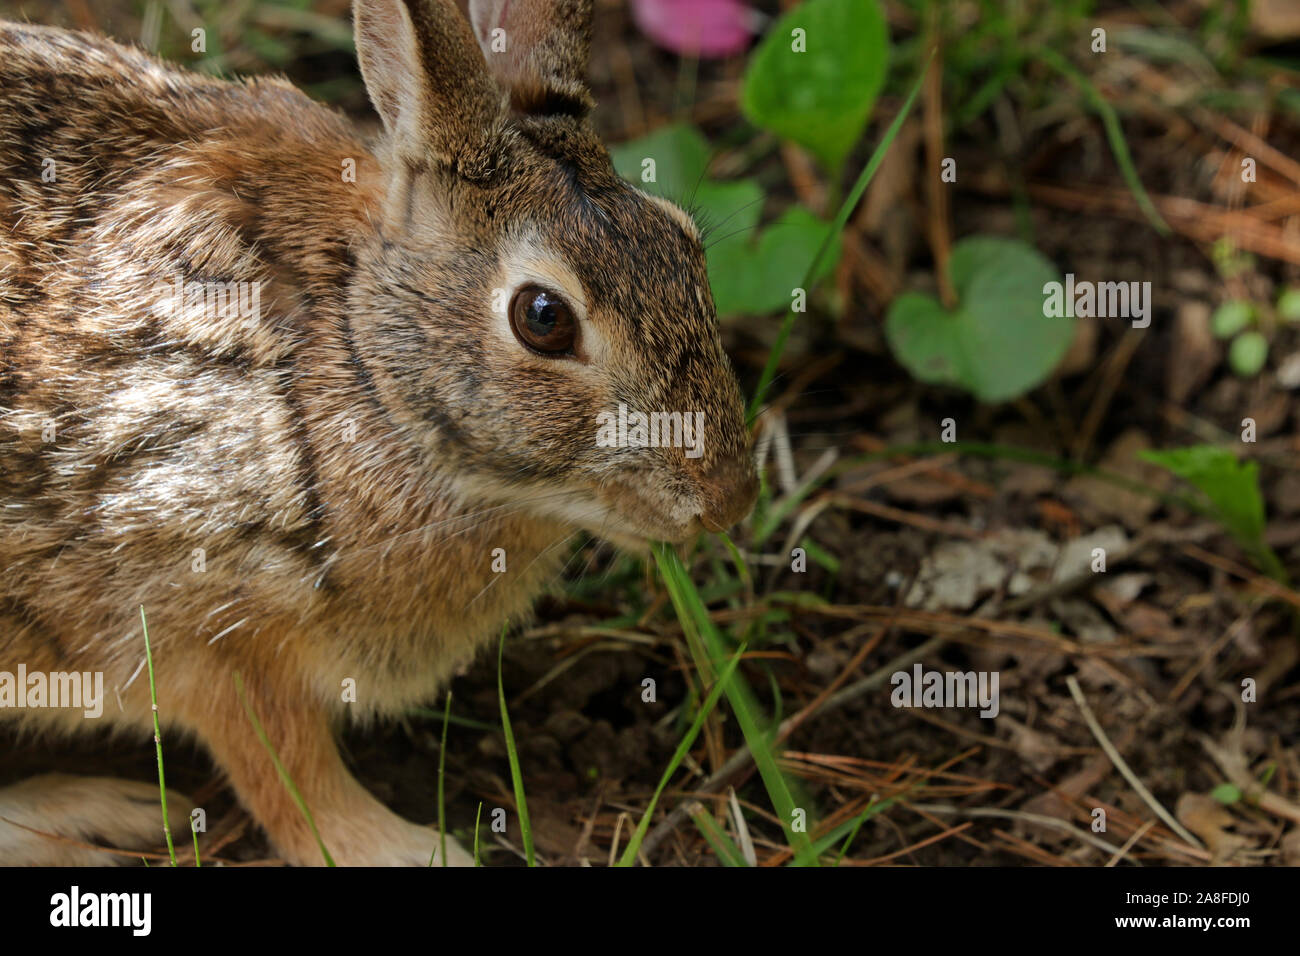 Close-up of an Eastern cottontail rabbit (Sylvilagus floridanus) eating a blade of grass Stock Photo